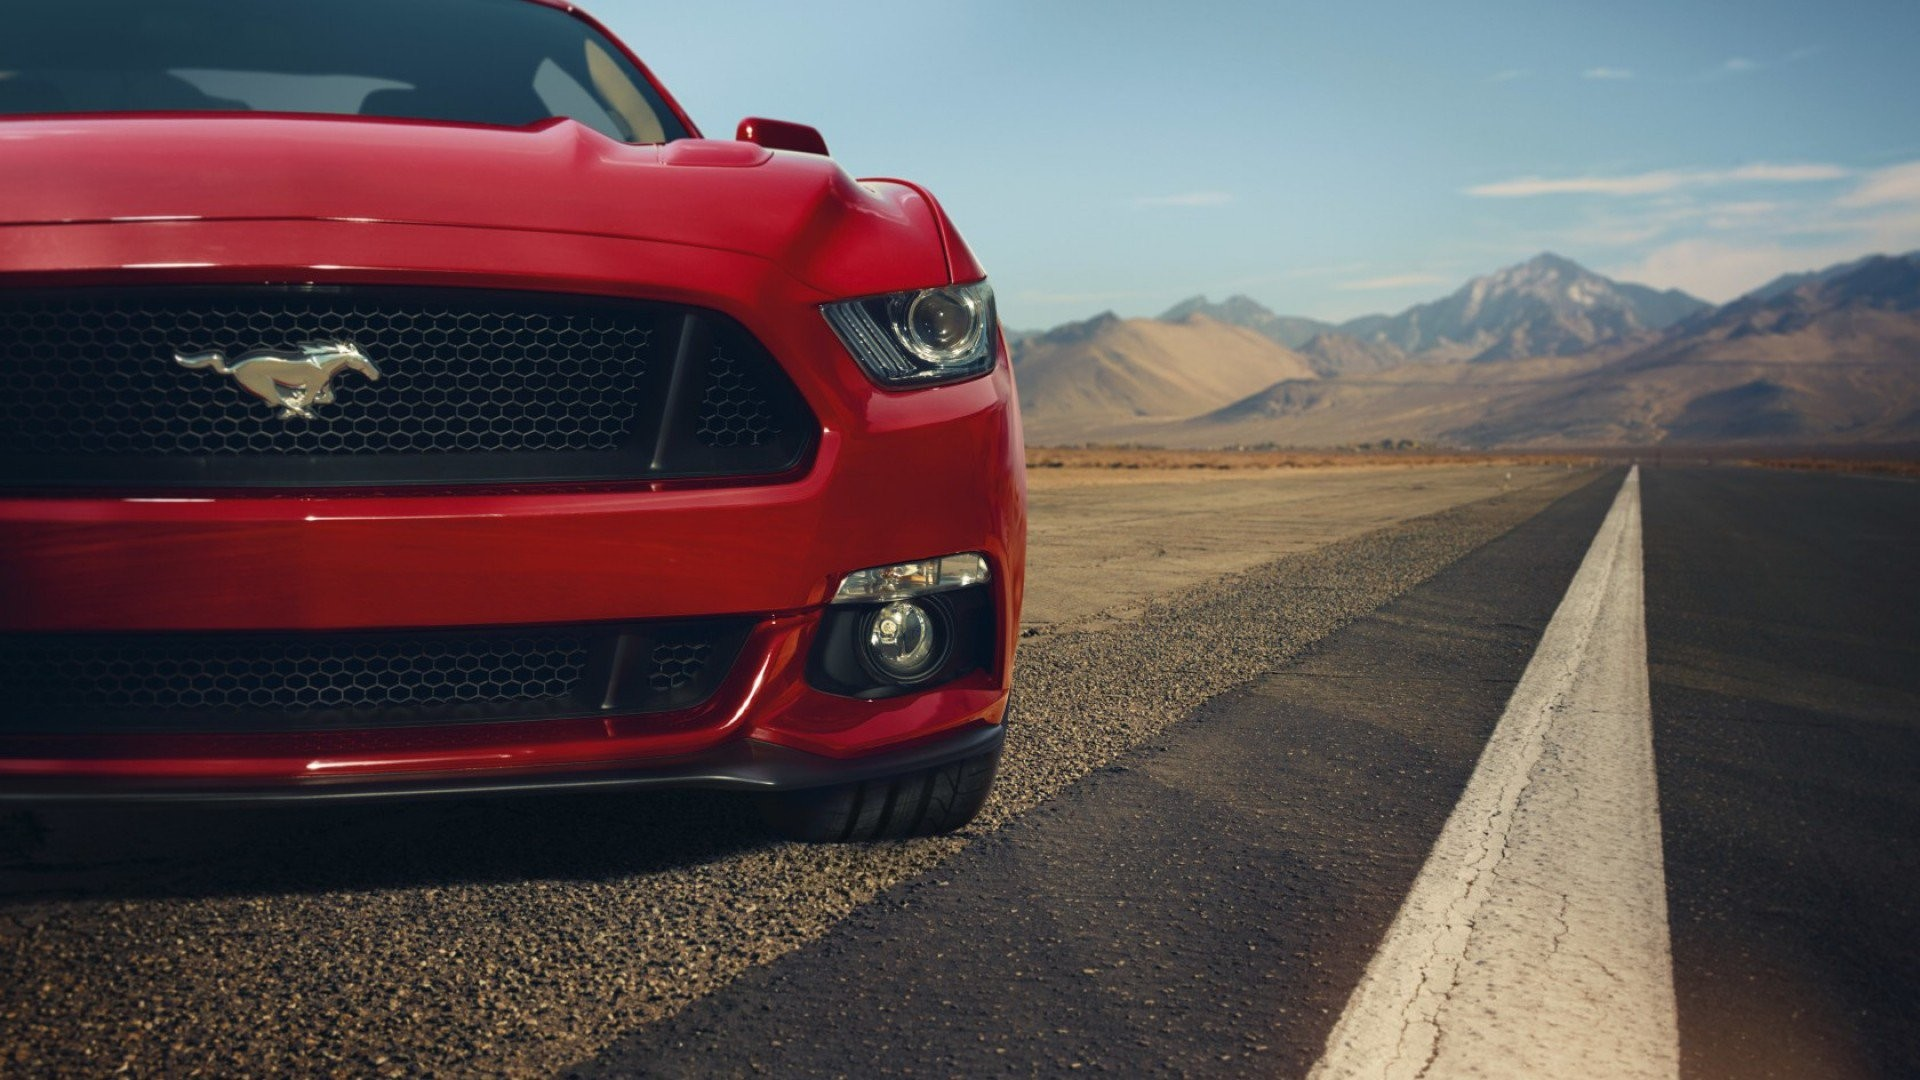 1920x1080 Ford Mustang GT Red Front Muscle Car